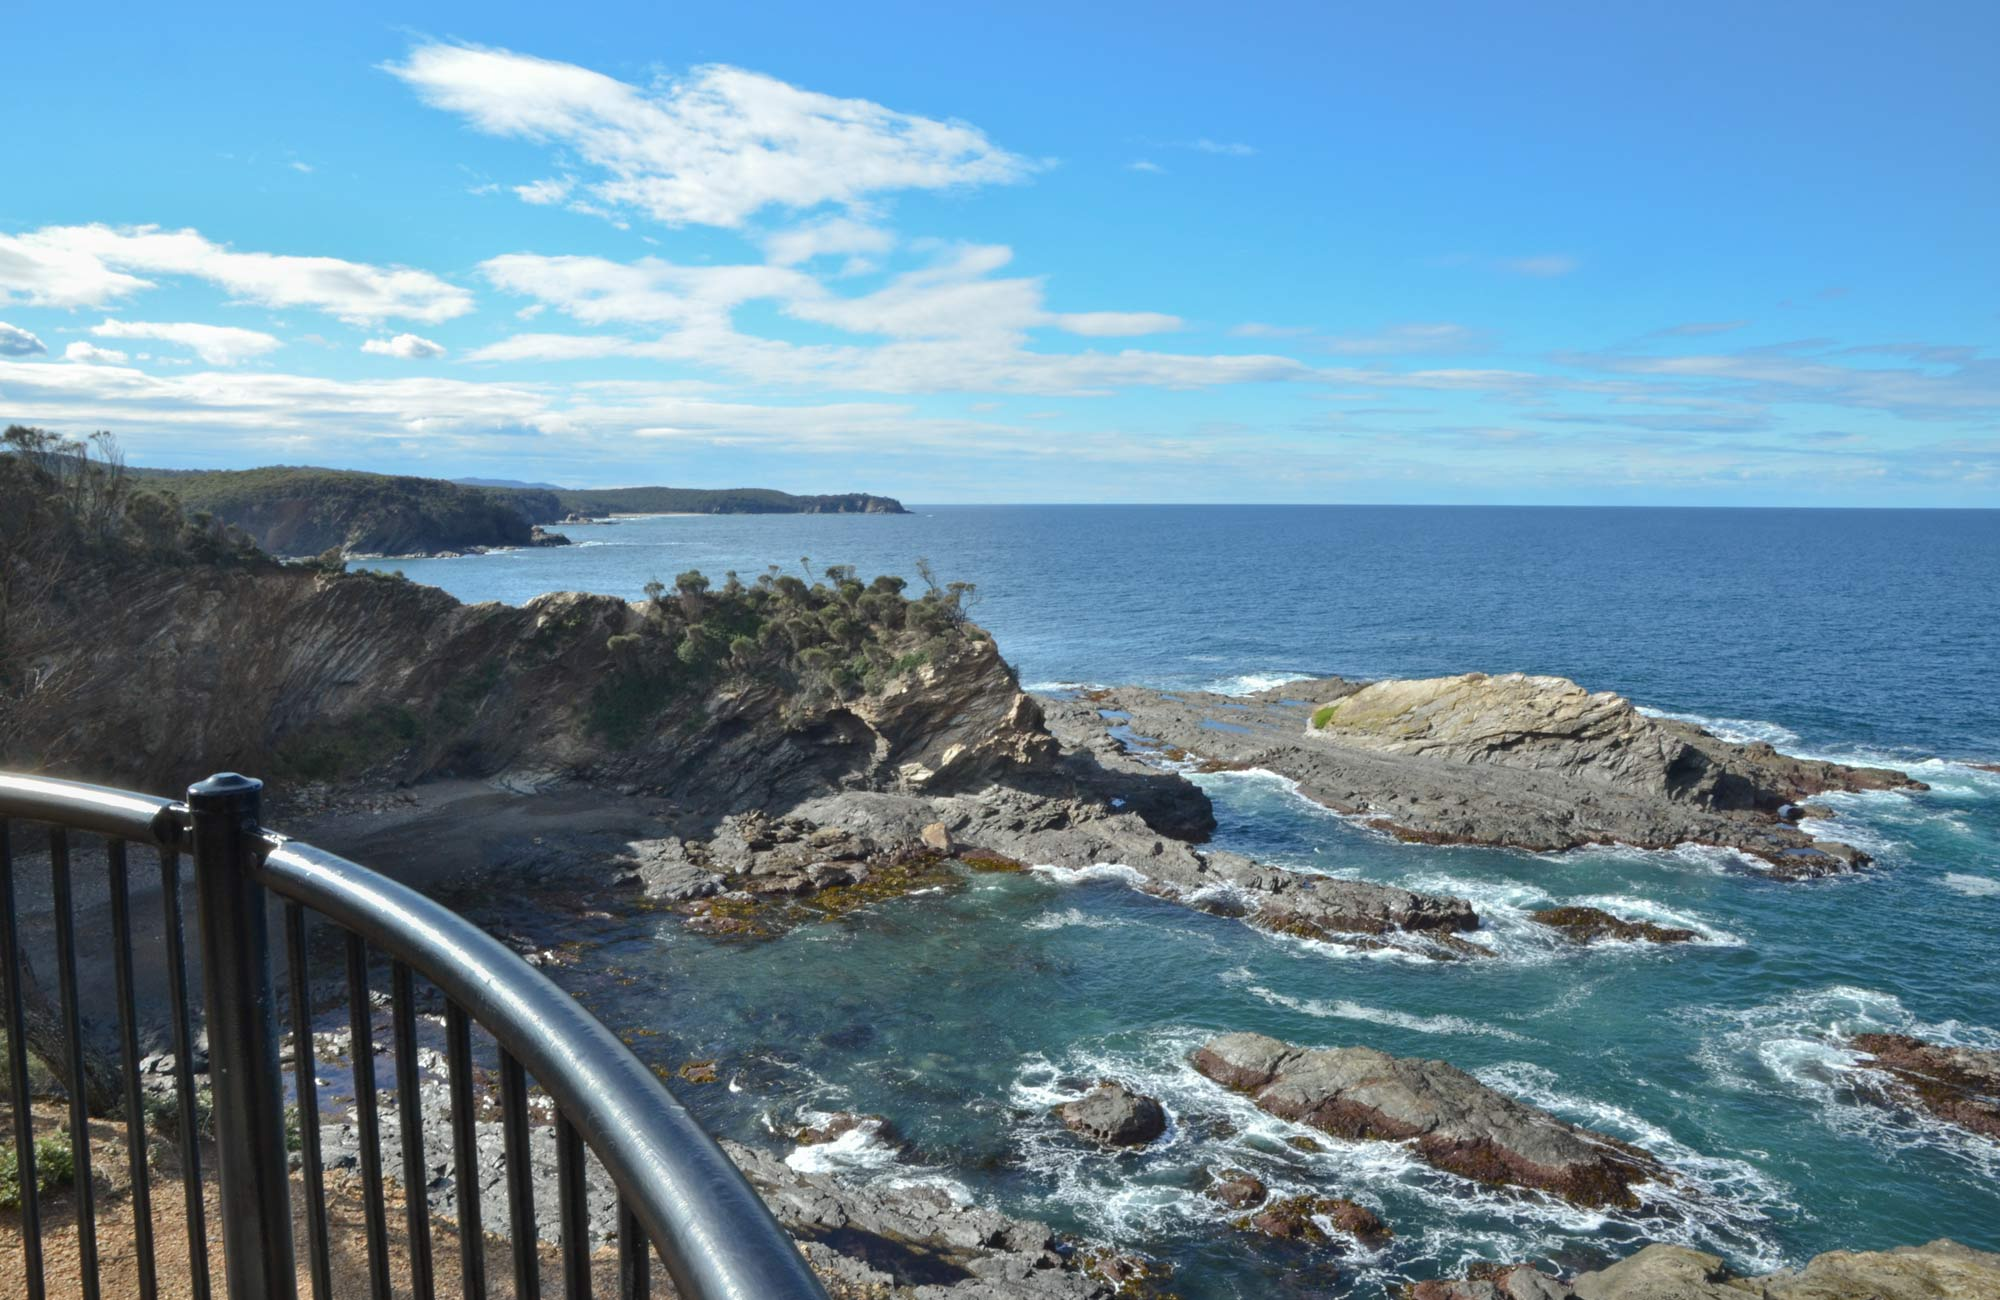 North Head lookout, Murramarang National Park. Photo: M Jarmon